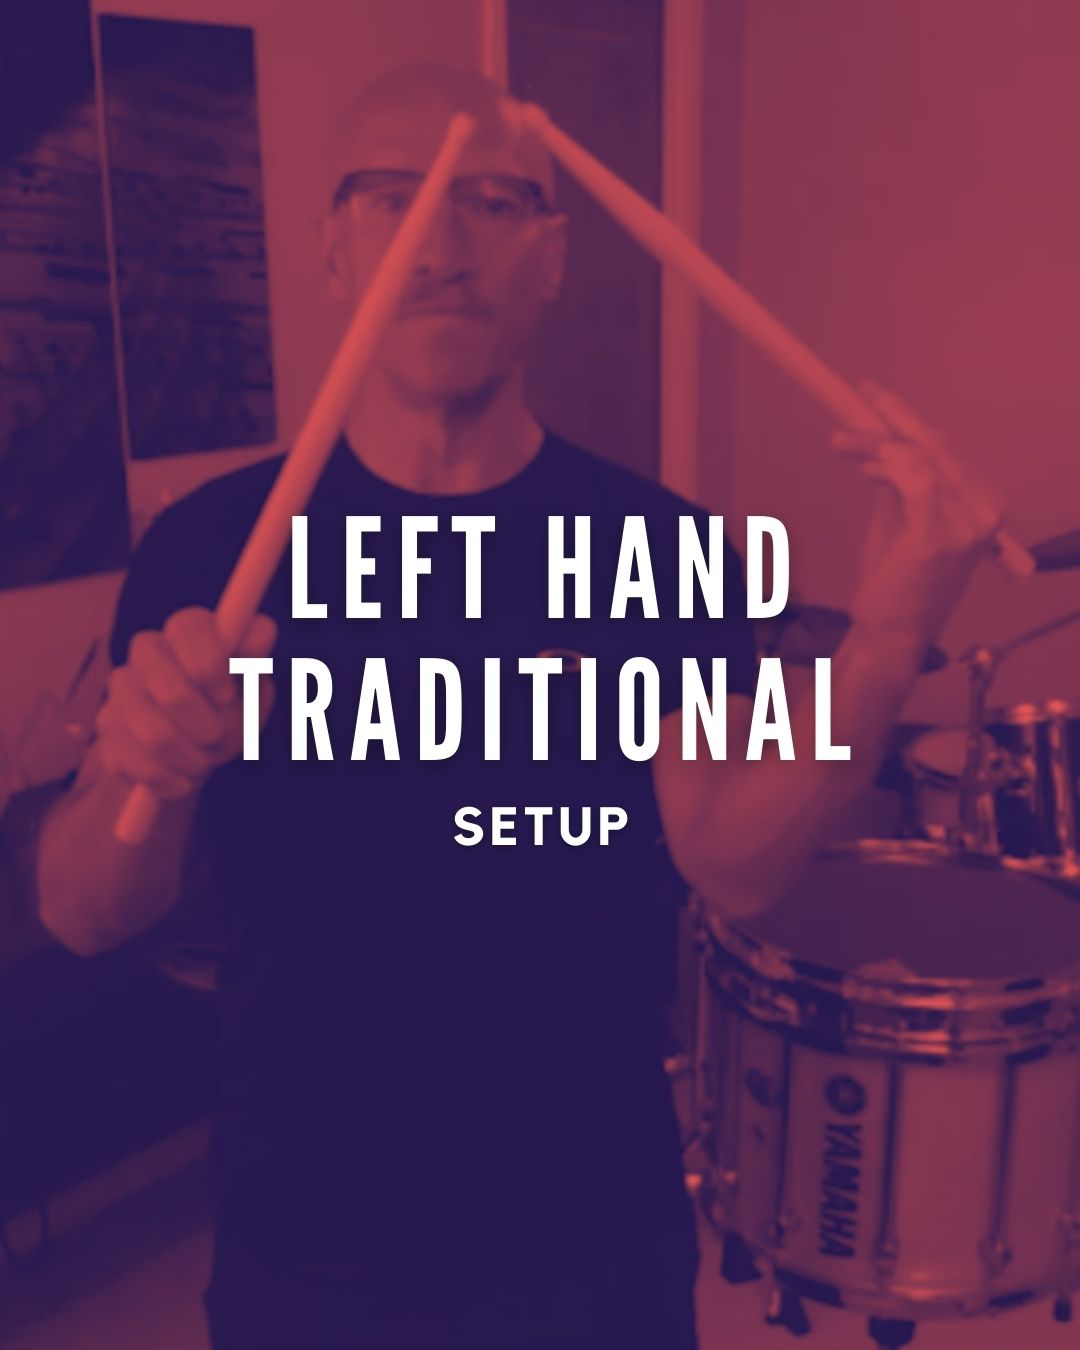 Left Hand Traditional